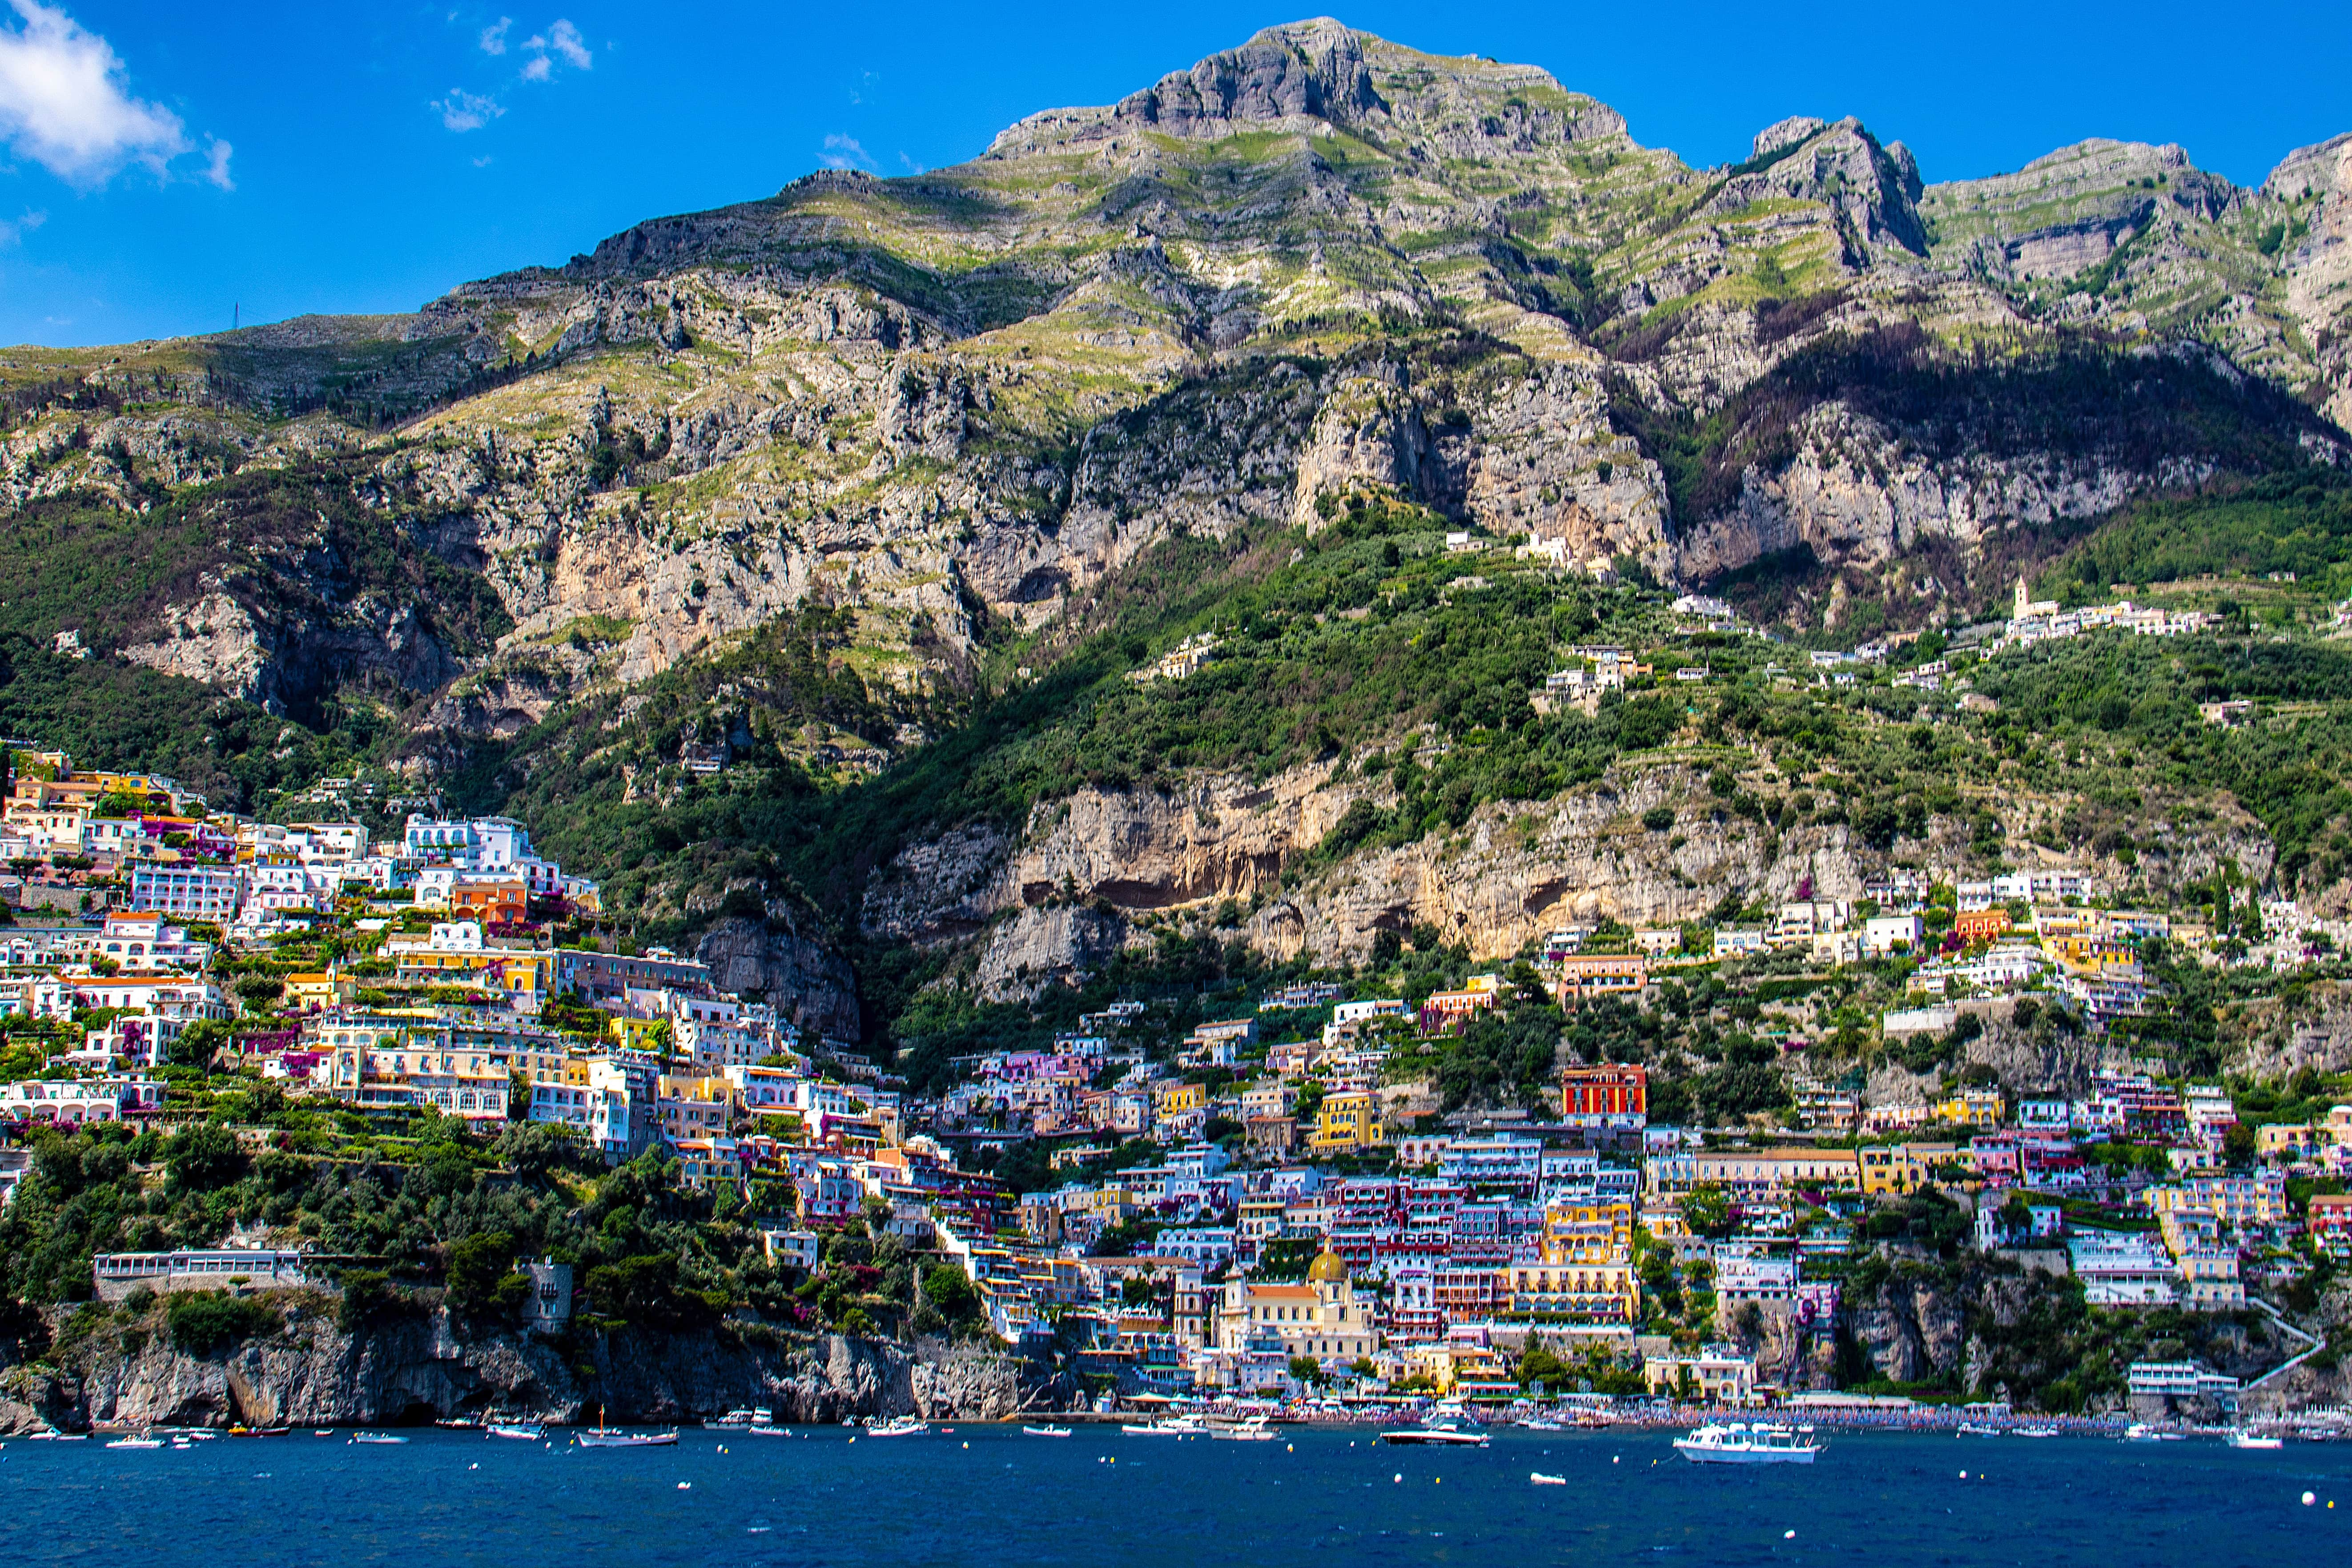 Exploring the Amalfi Coast is a gorgeous thing to do in Italy